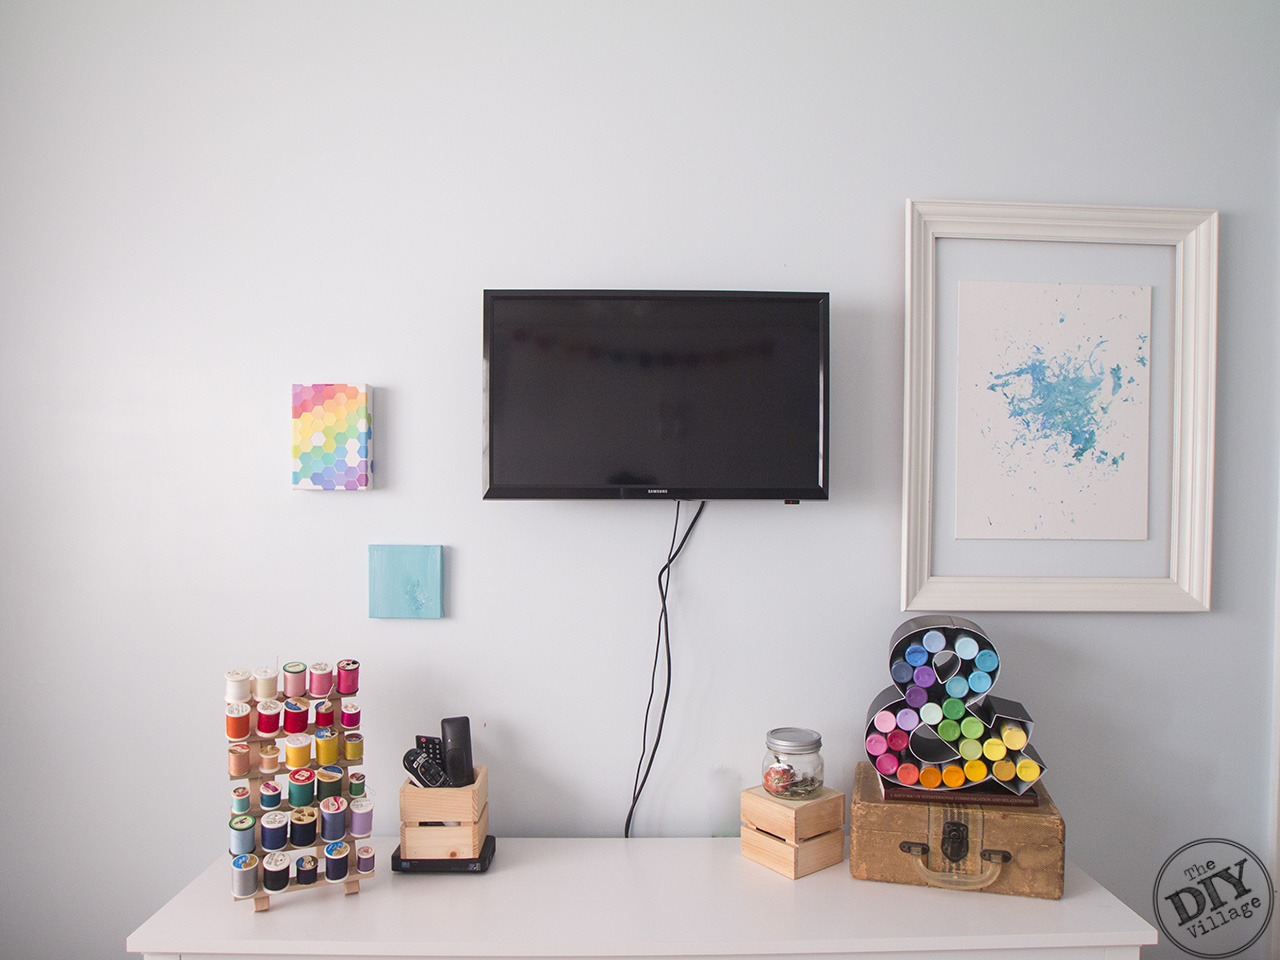 Wall Mounted TV Installation Made Easy in a multi purpose room (dual craft room and guest room)